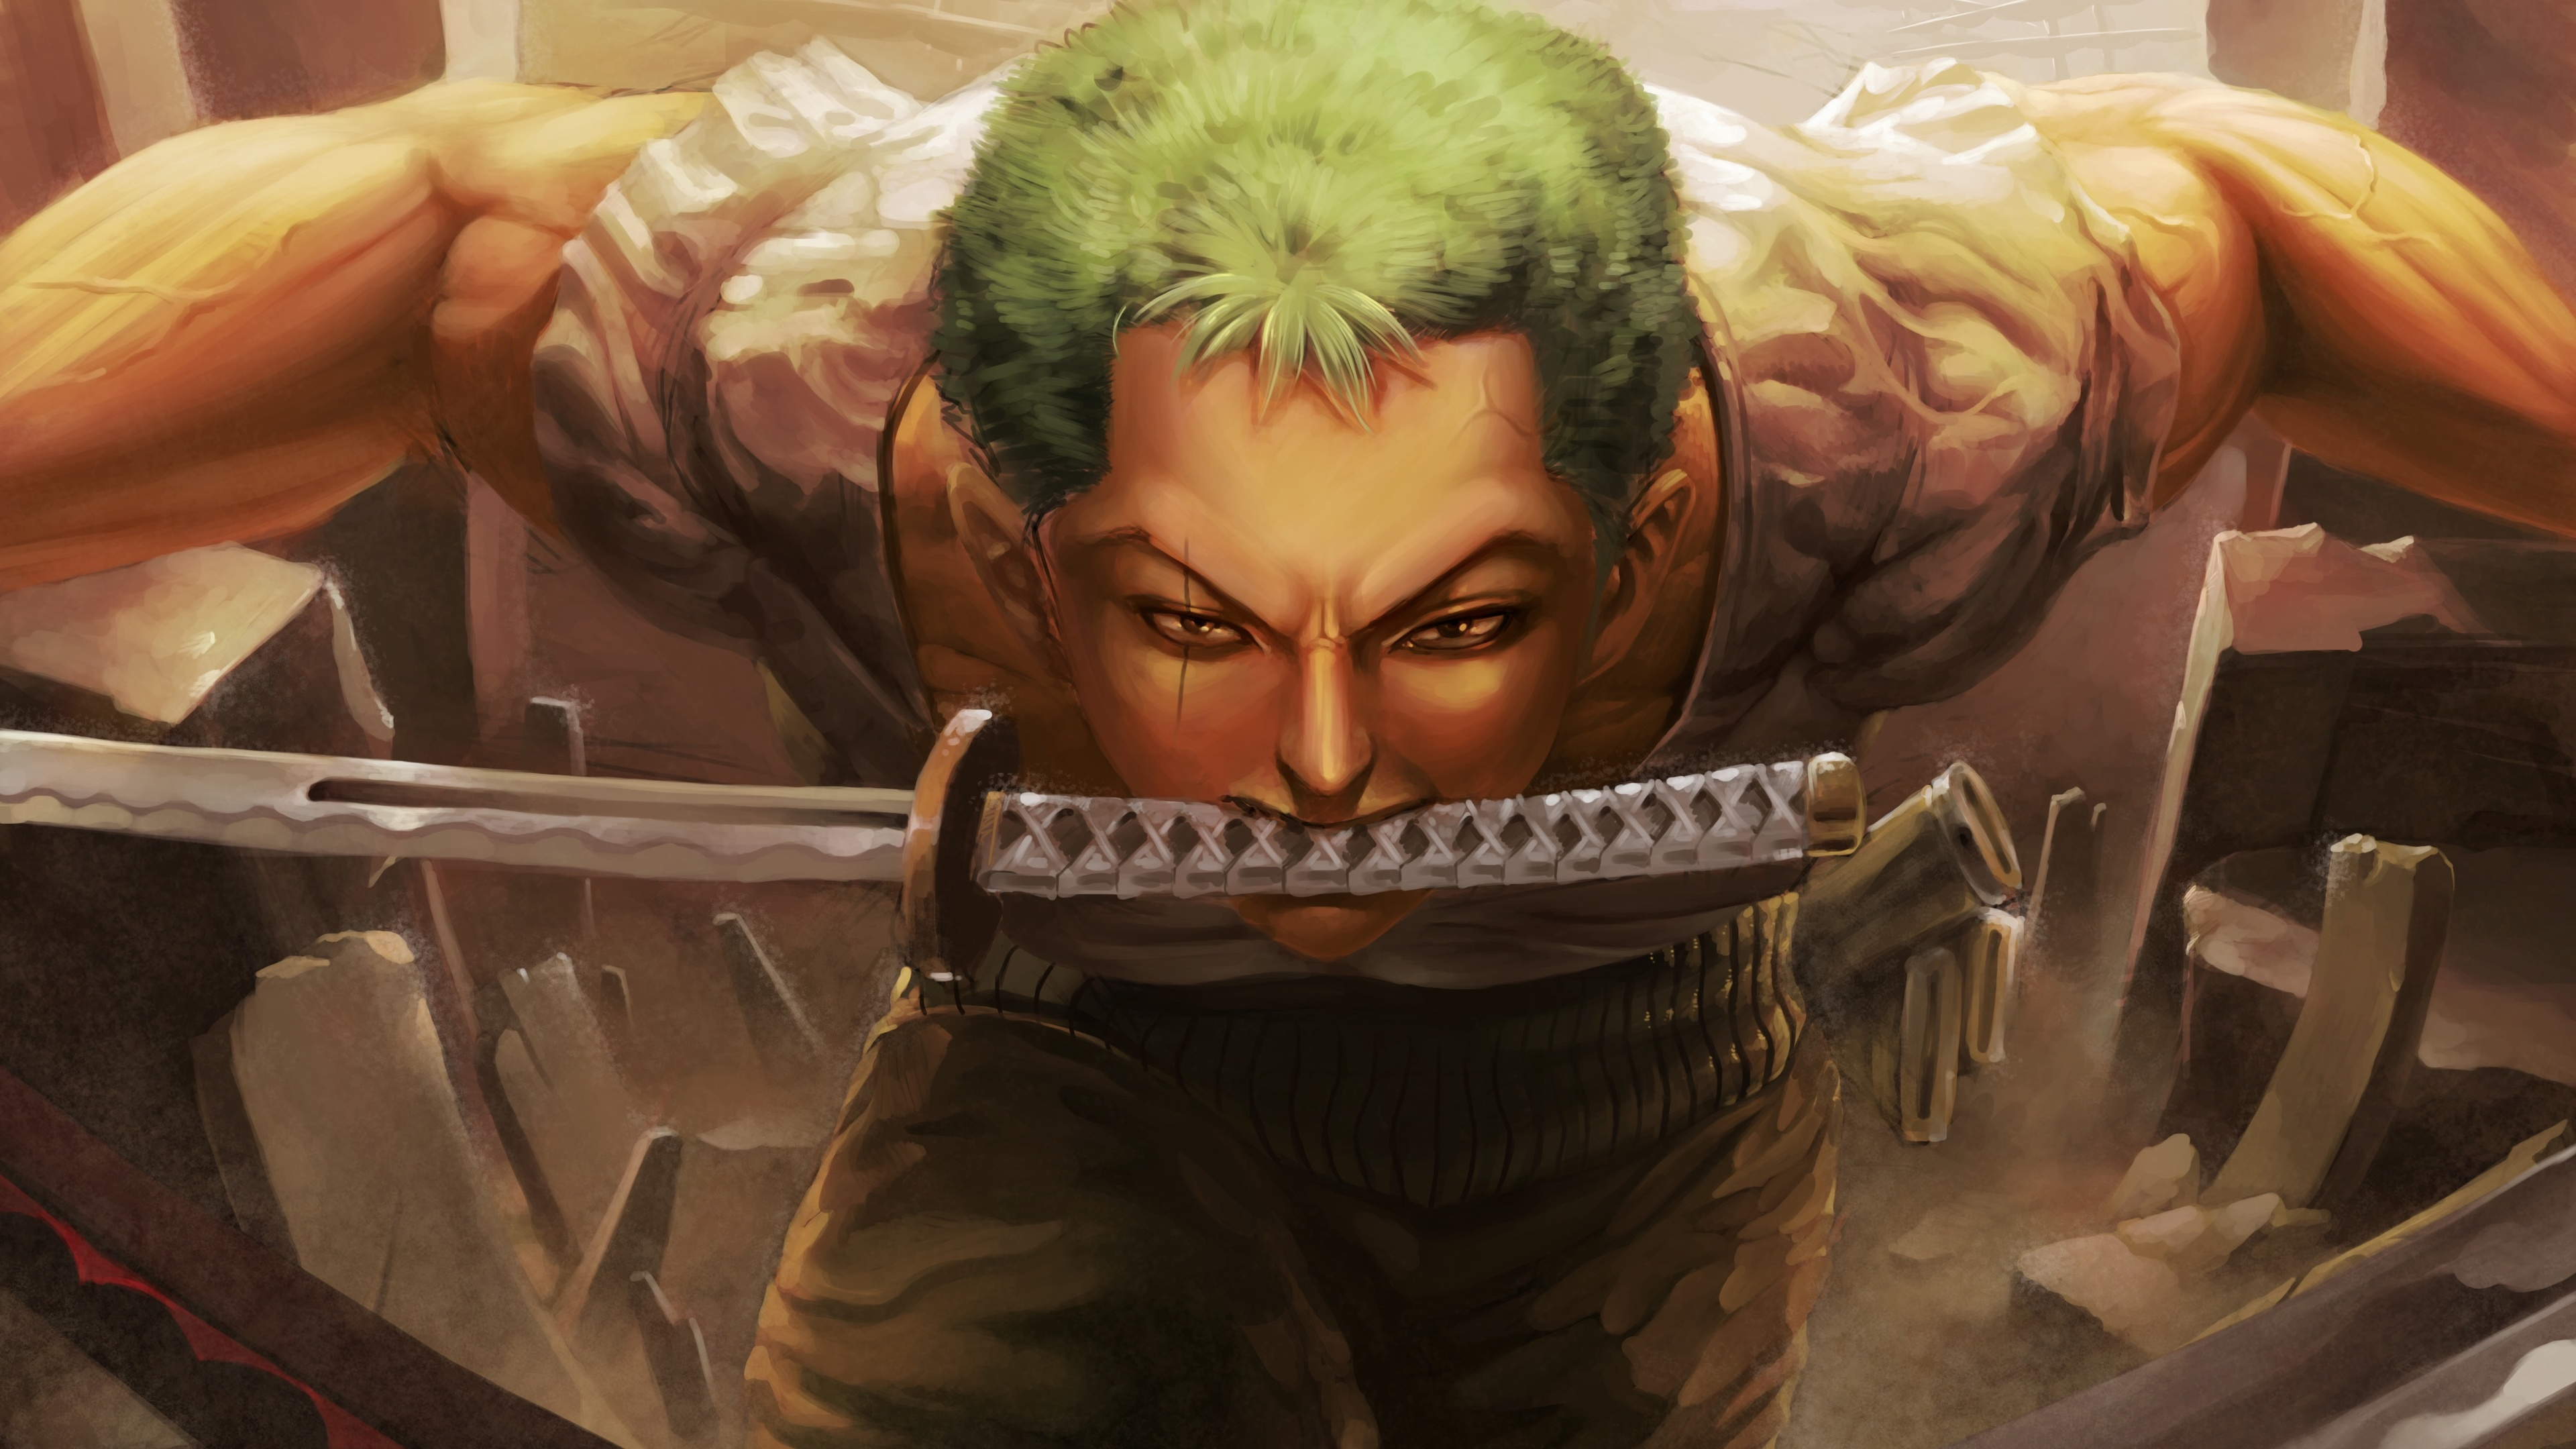 roronoa zoro 4k 1541973709 - Roronoa Zoro 4k - roronoa zoro wallpapers, one piece wallpapers, hd-wallpapers, deviantart wallpapers, anime wallpapers, 4k-wallpapers